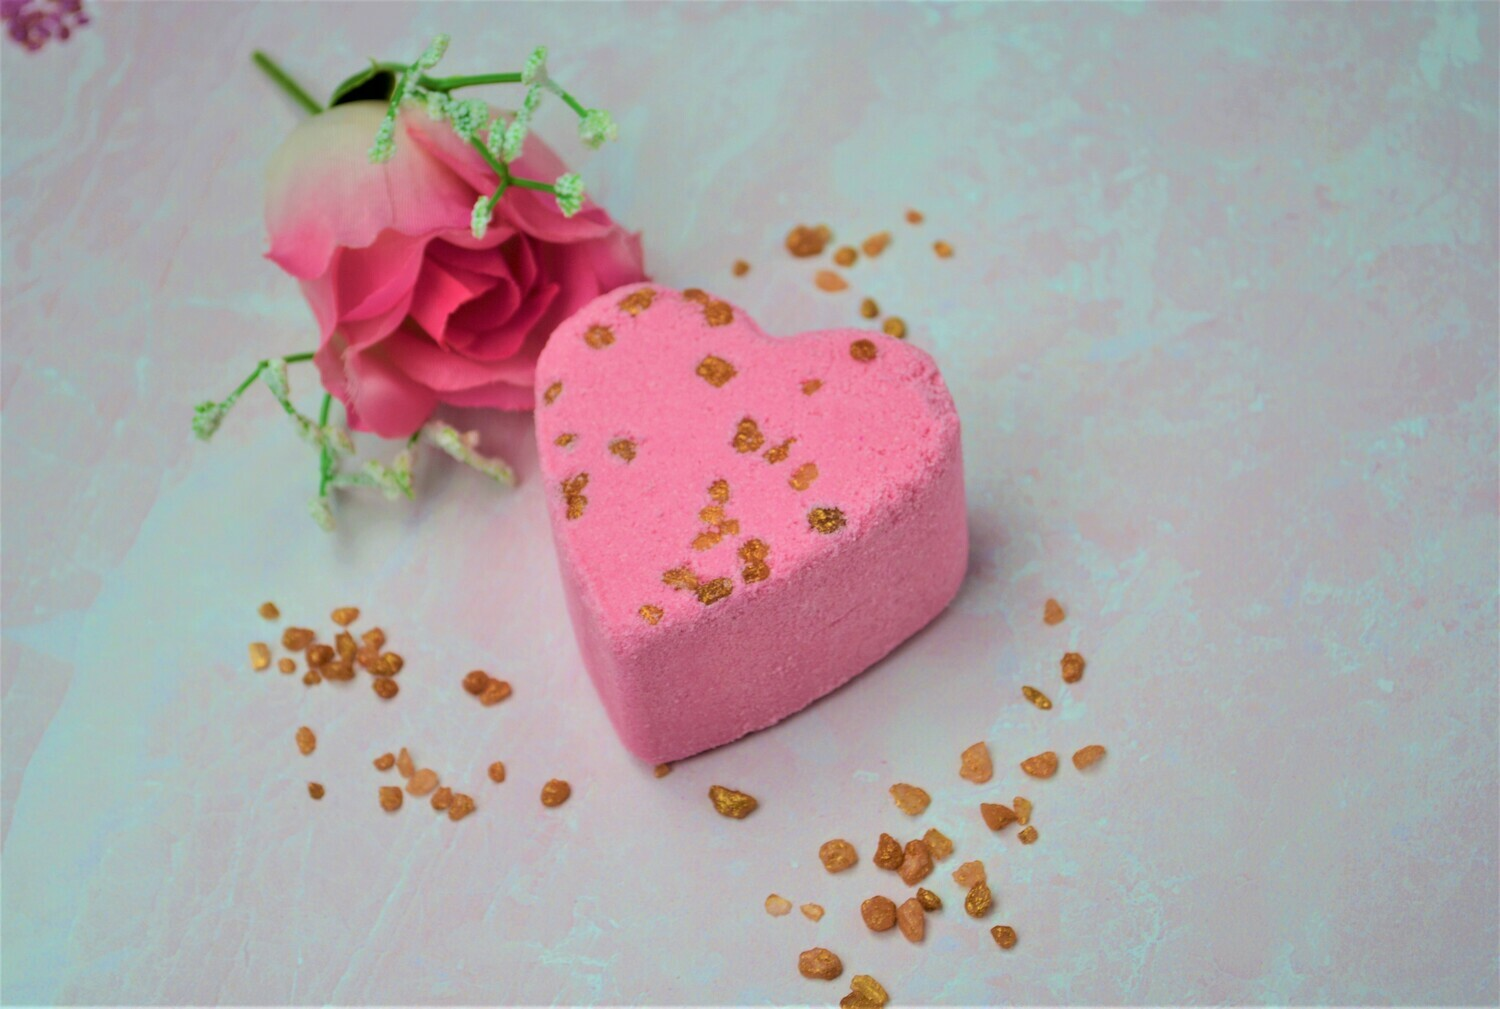 Maui Mist Heart Bath Bombs